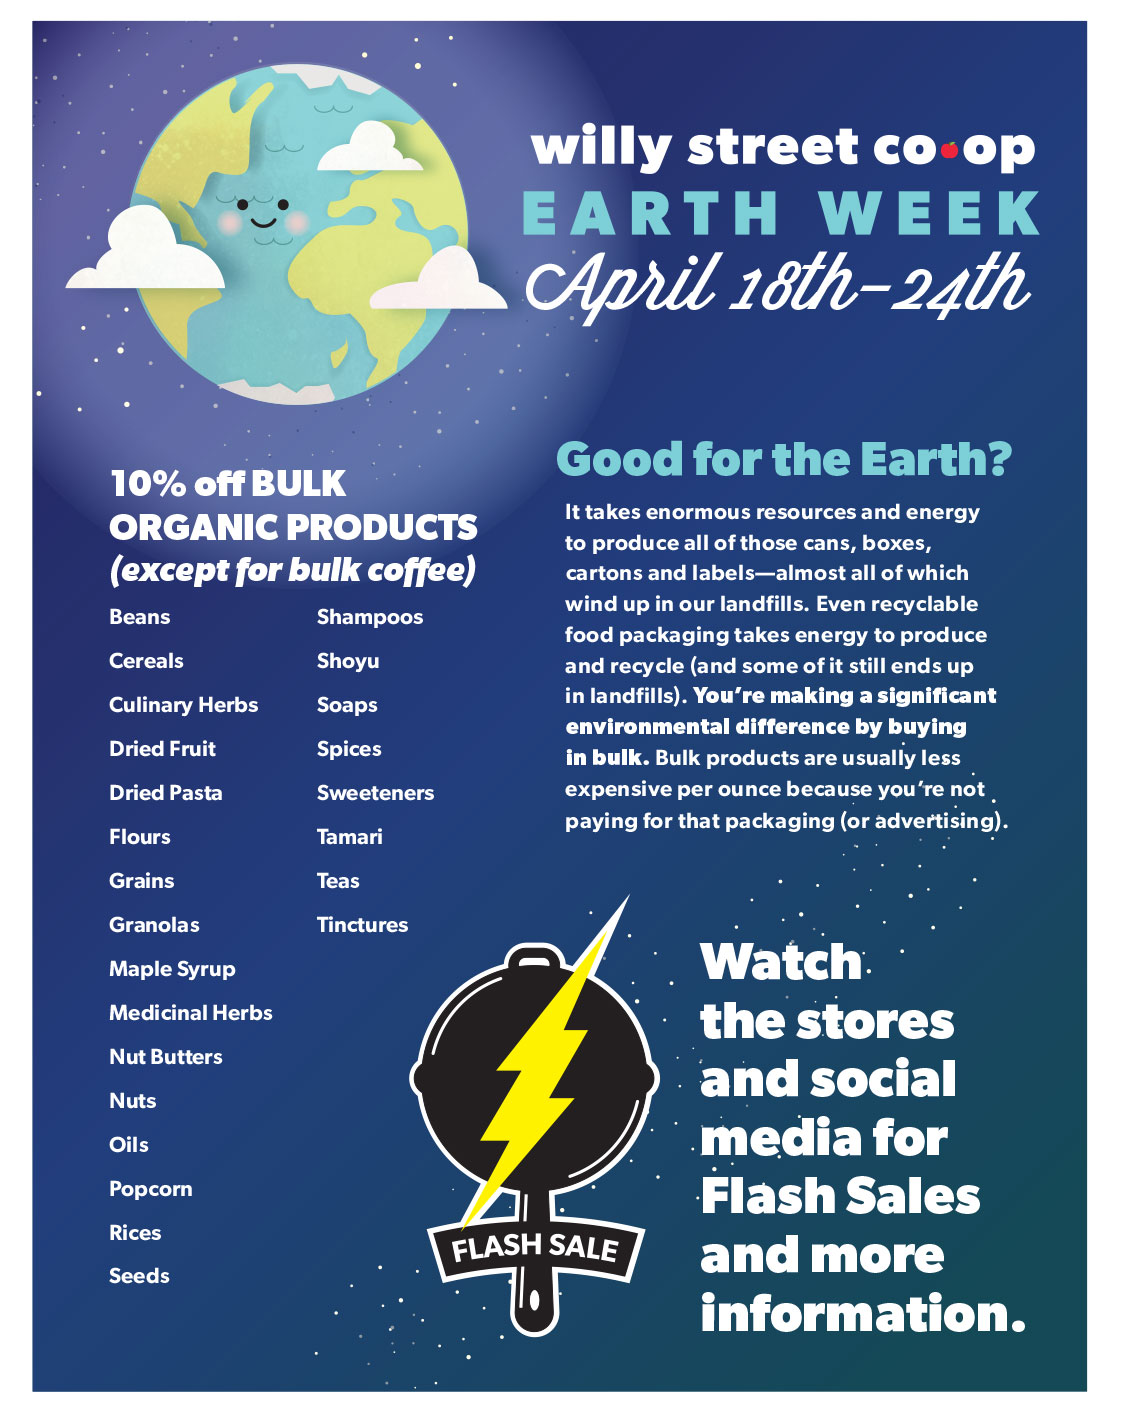 Earth Week April 18th-24th